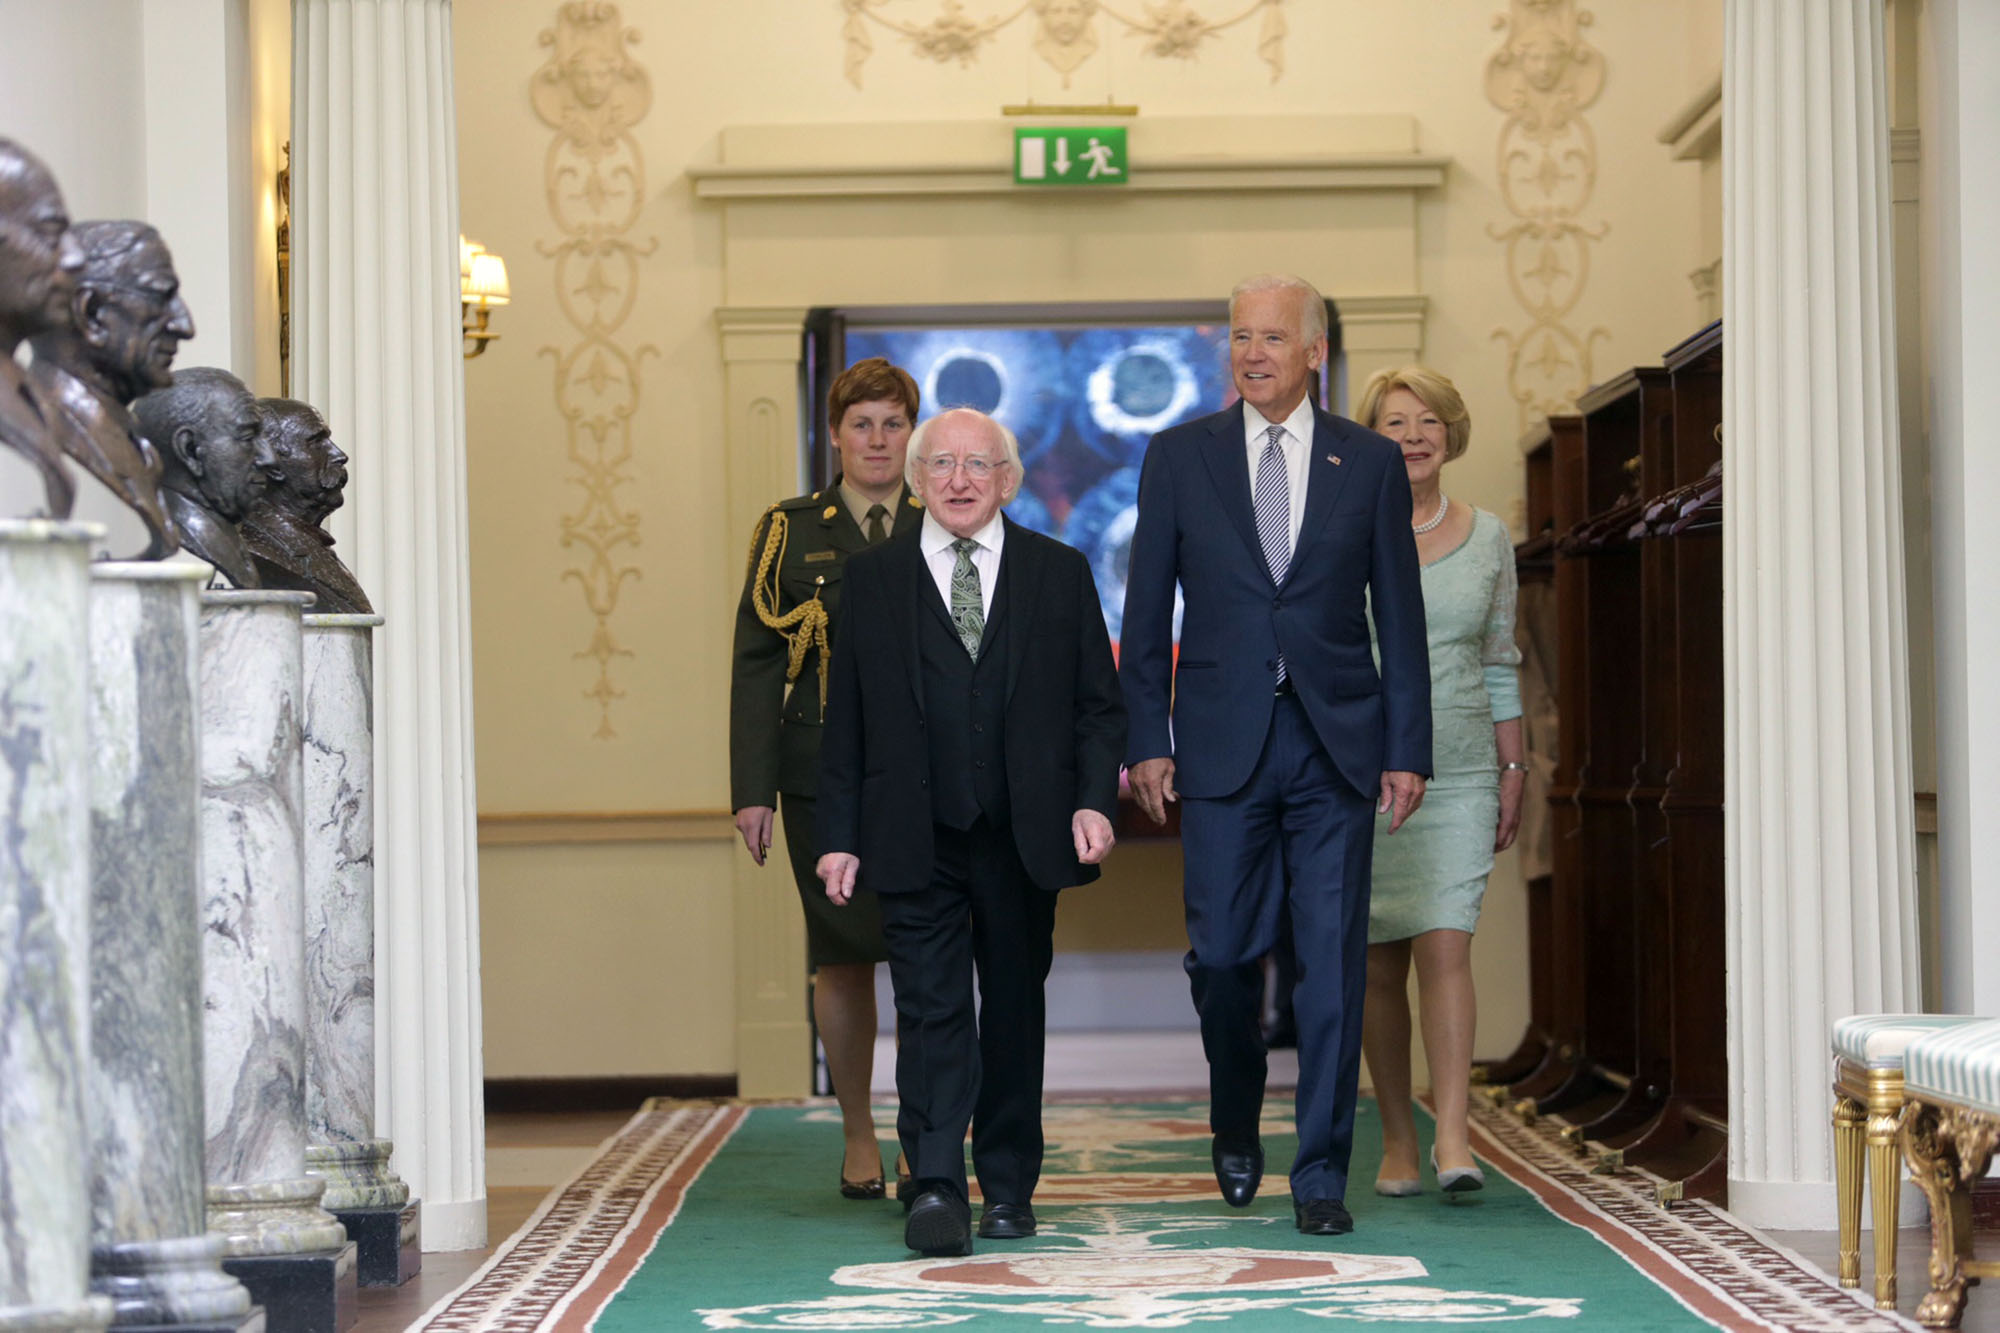 Vice President Joe Biden greets President Michael Higgins and Sabina Higgins upon arrival at the President's Residence in Dublin, Ireland, June 22, 2016. (Official White House Photo by David Lienemann)